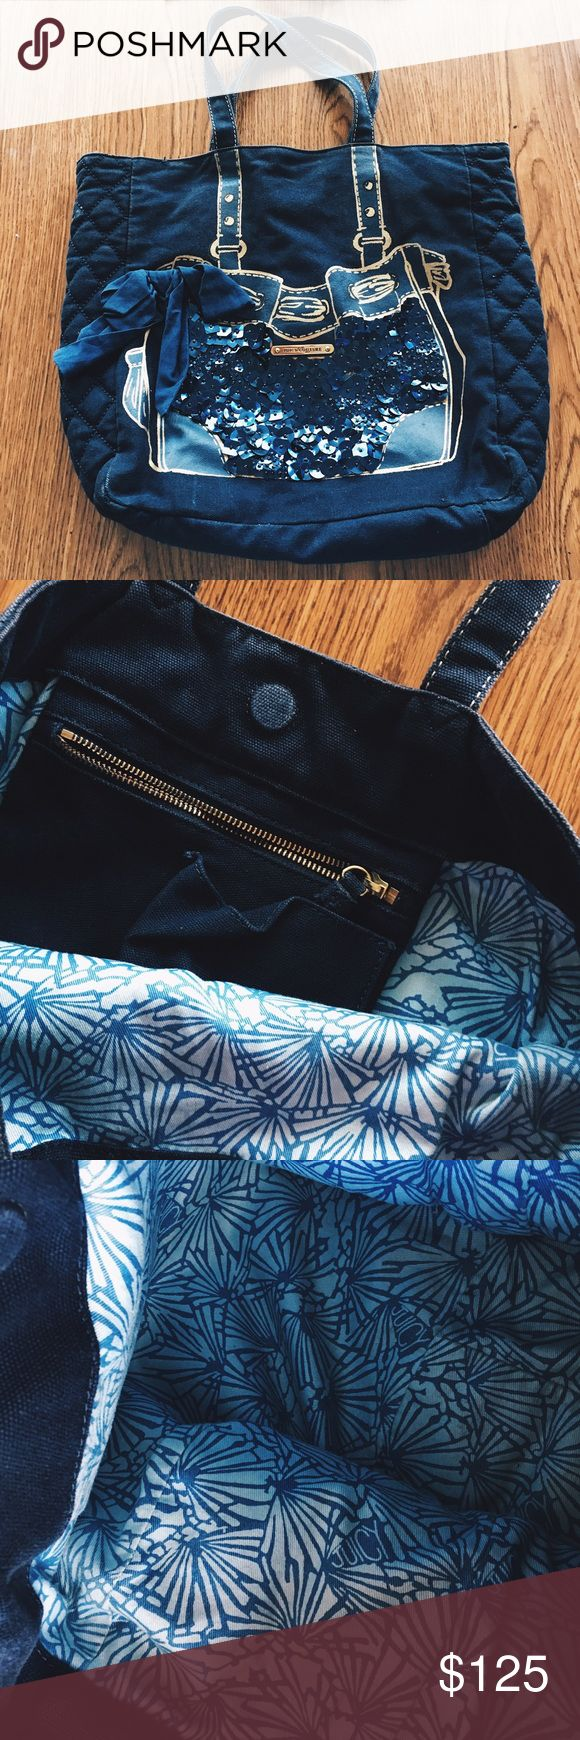 Juicy Couture Navy Purse Tote Good condition! A couple tiny stains in the corner of the inside of the bag. Juicy Couture Bags Totes